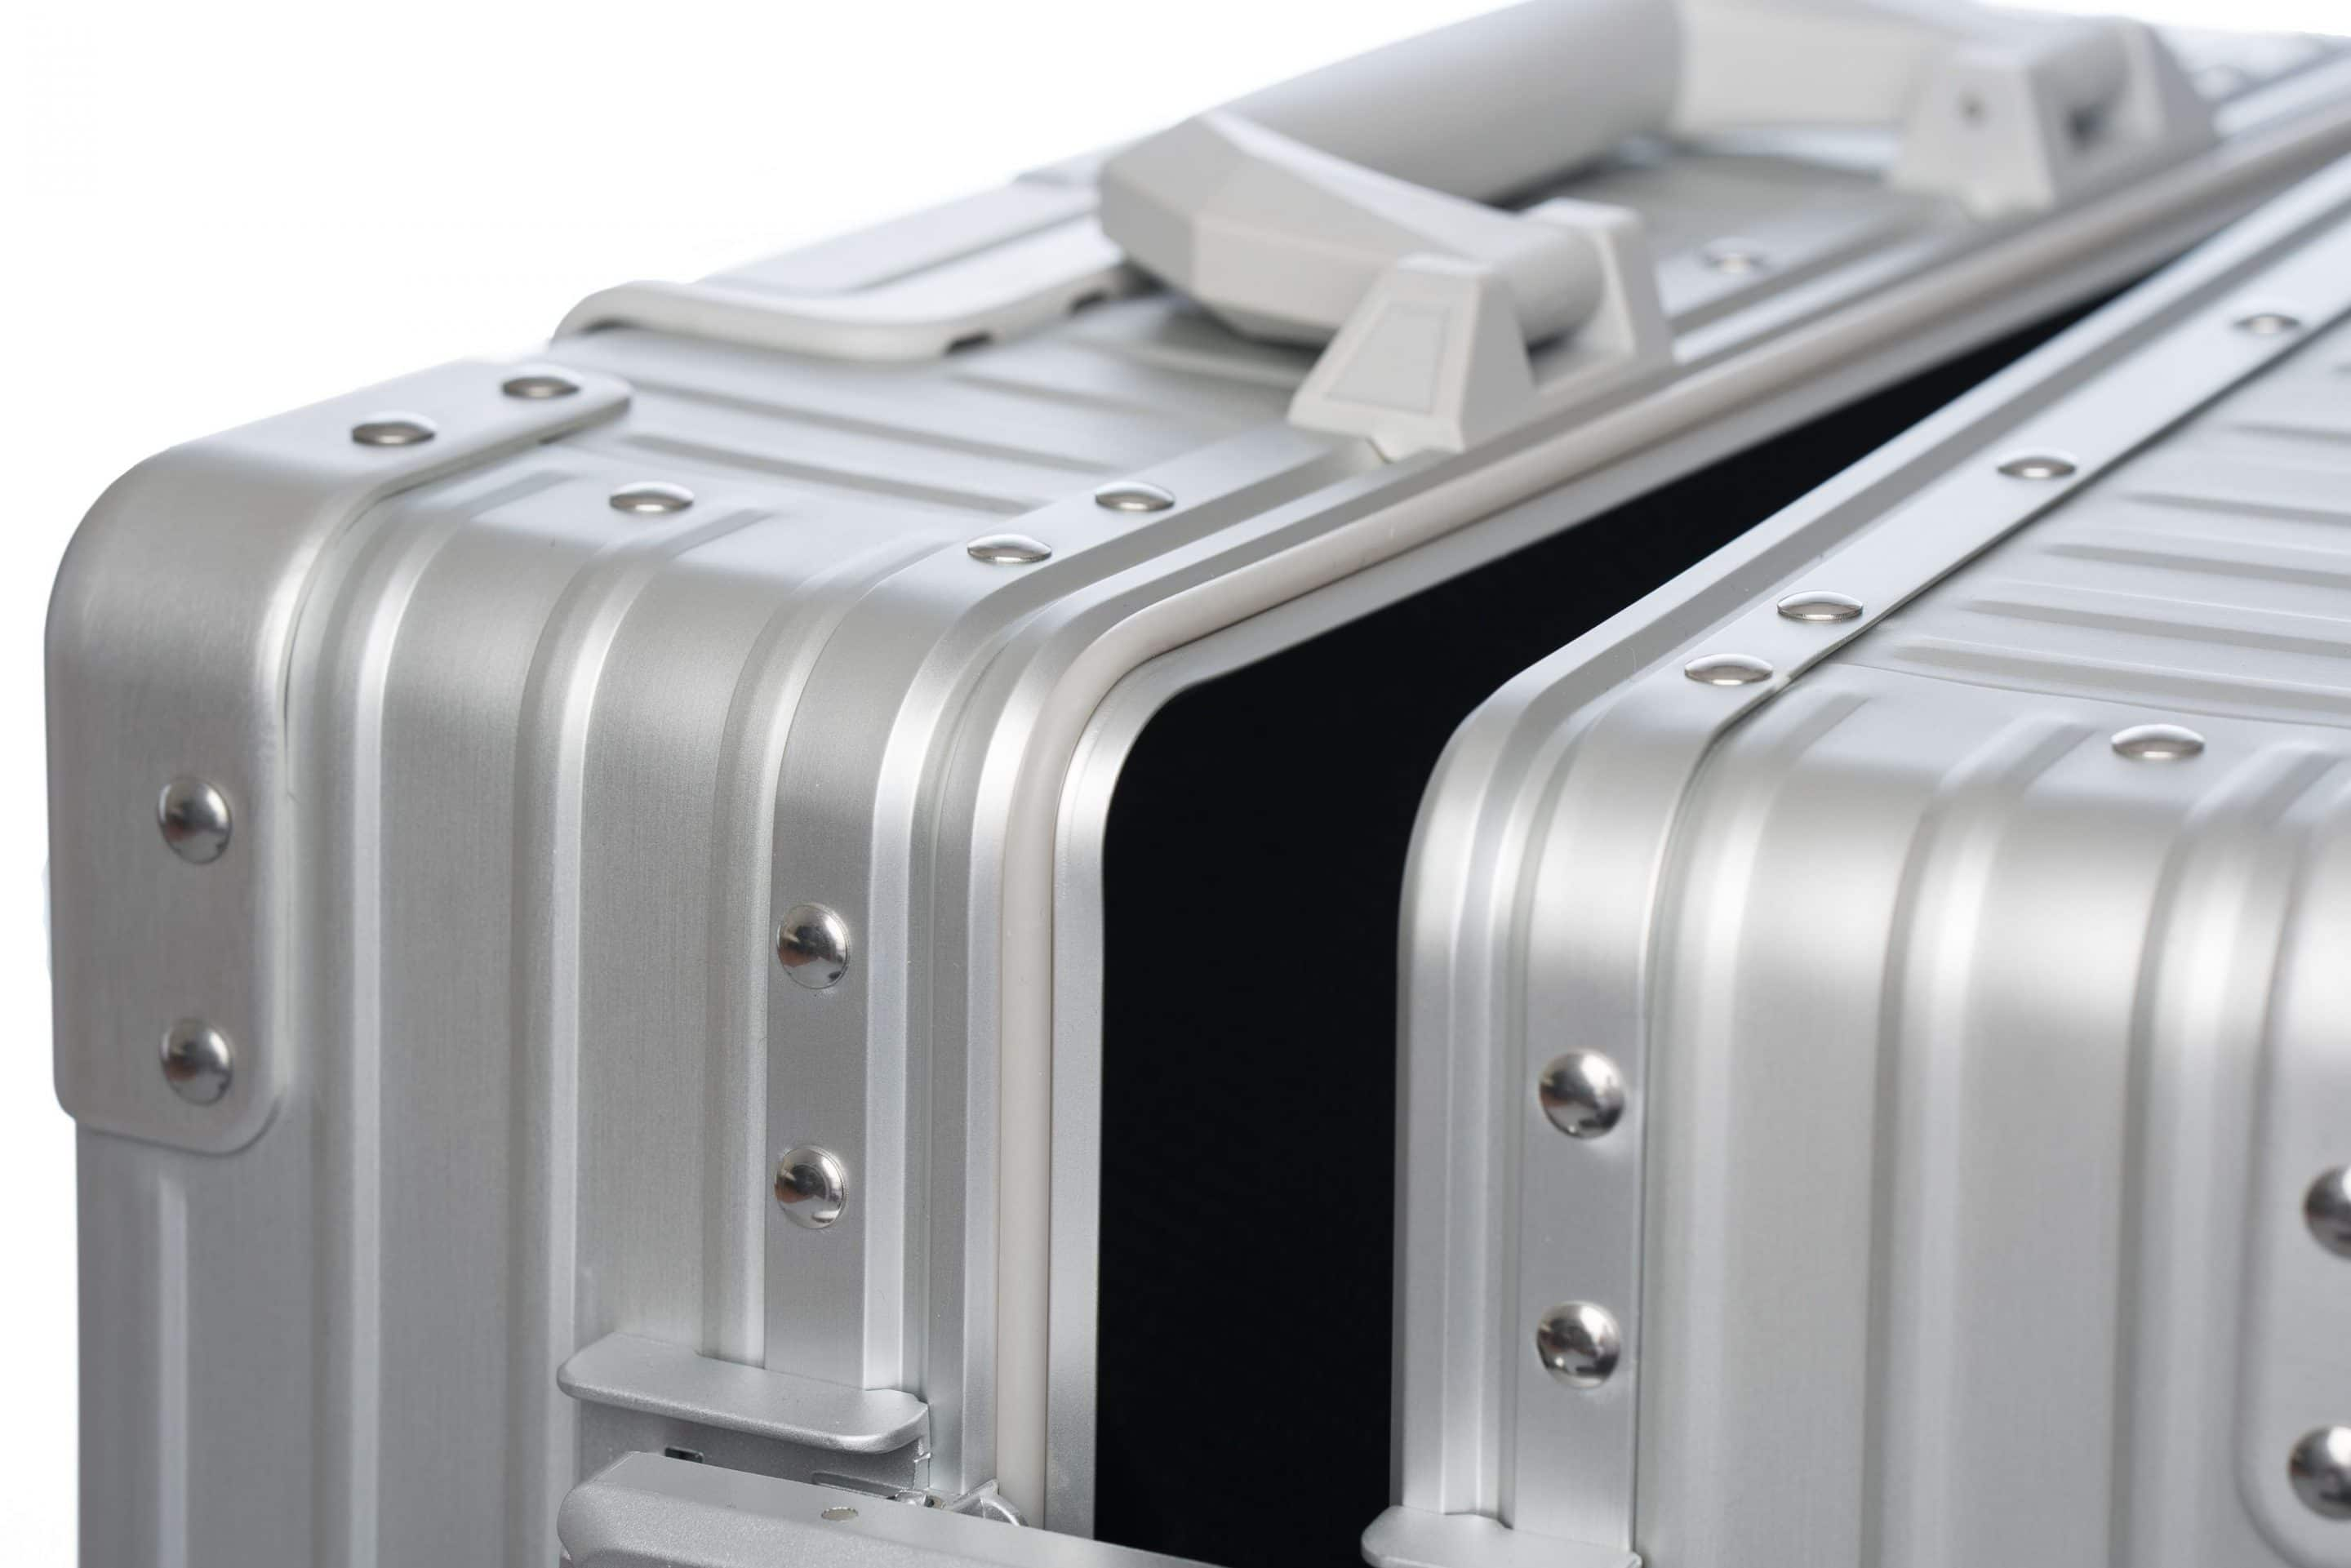 Spill proof business bag aluminum luggage